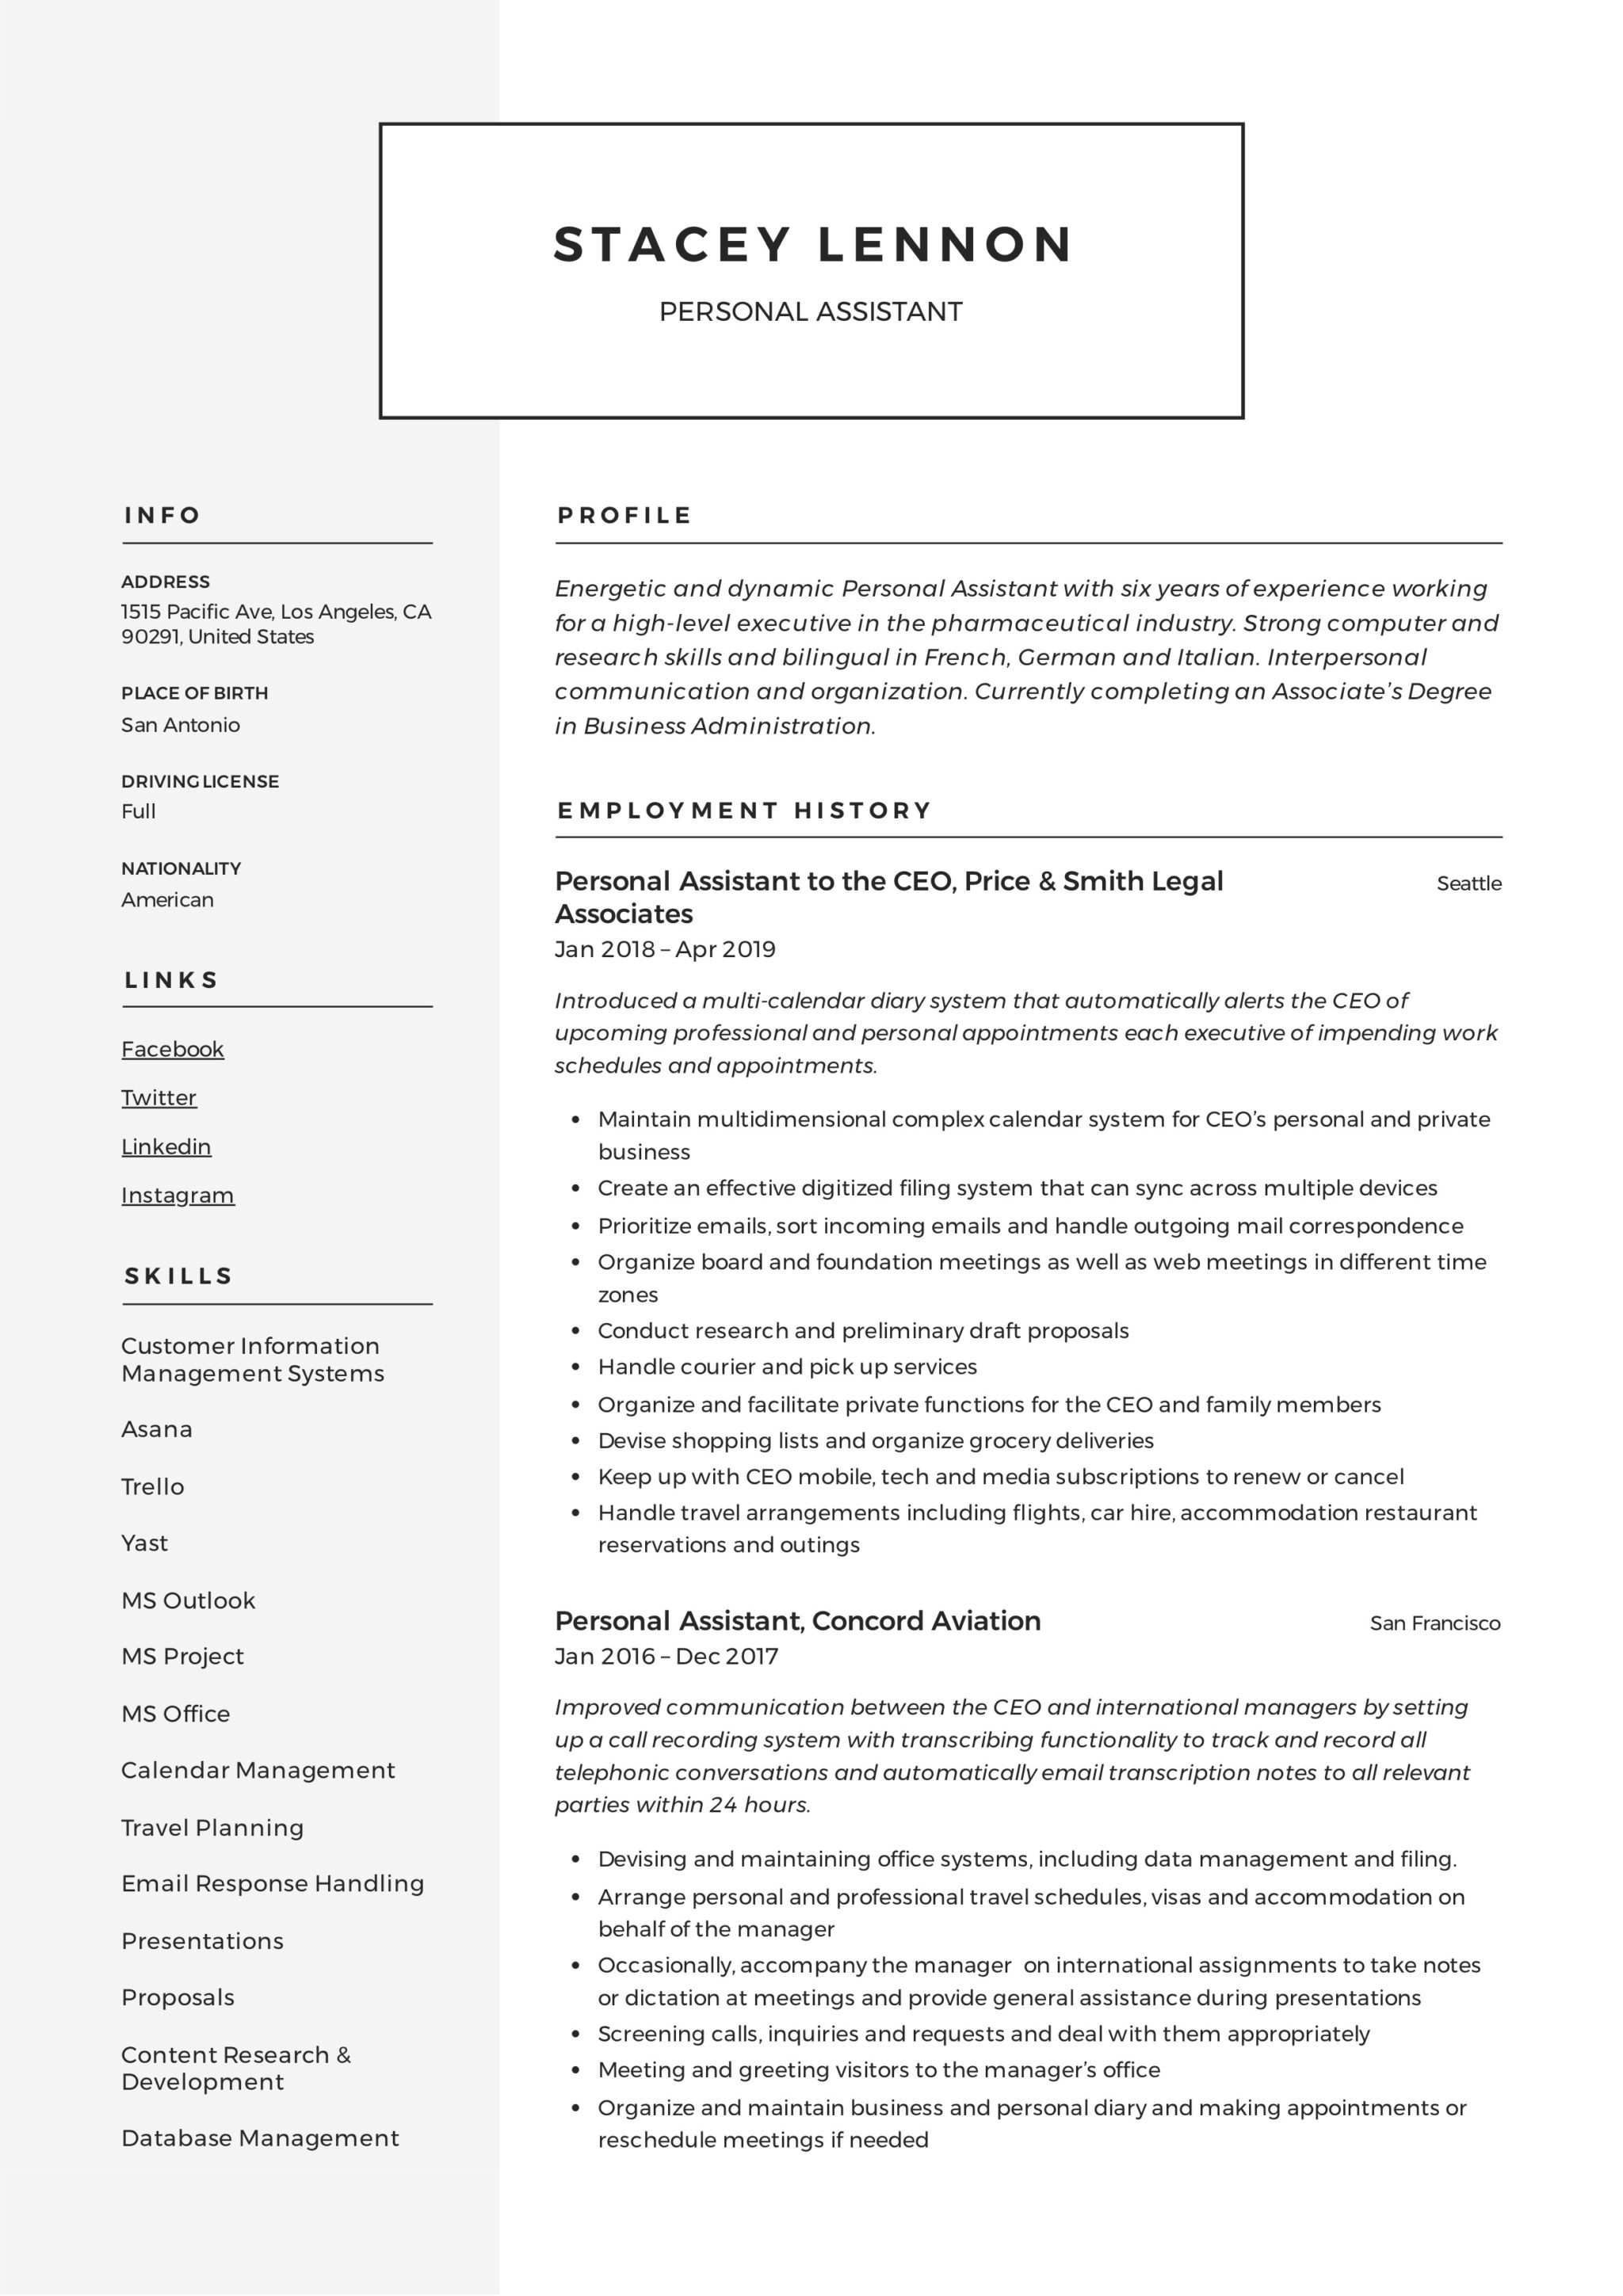 sample personal assistant resume